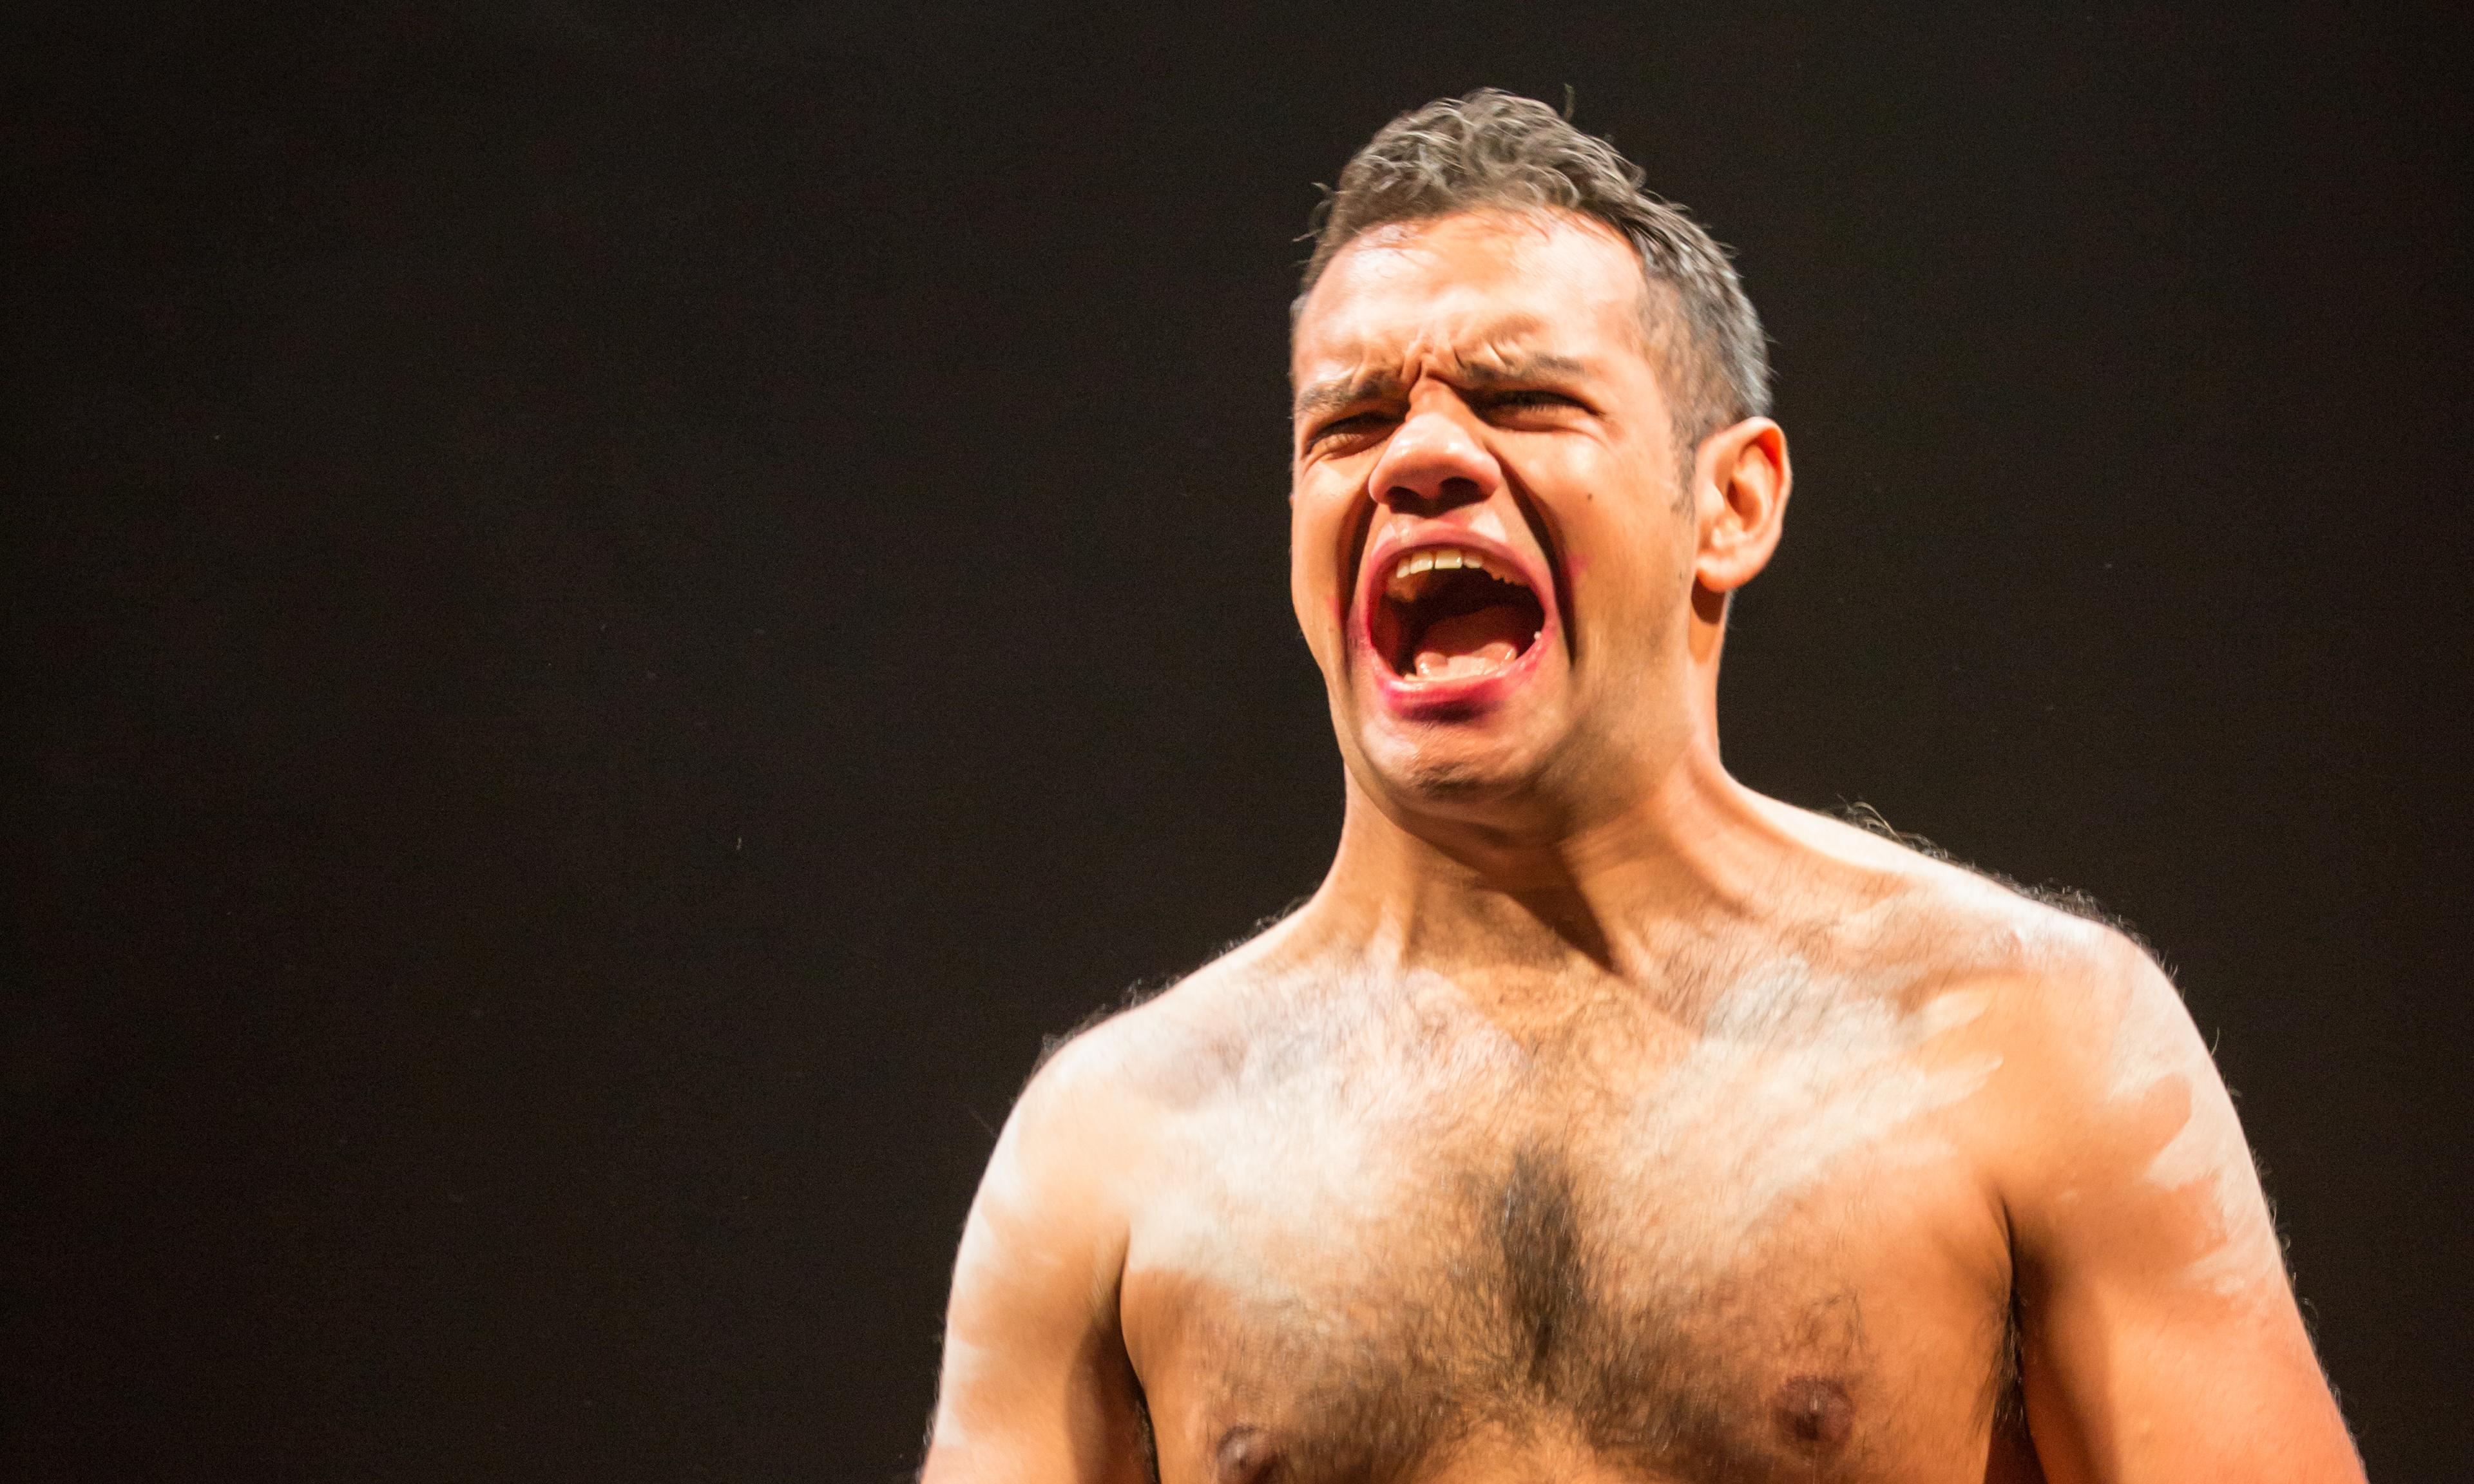 City of Gold review – ambitious, raw and provocative play launches a bold new voice